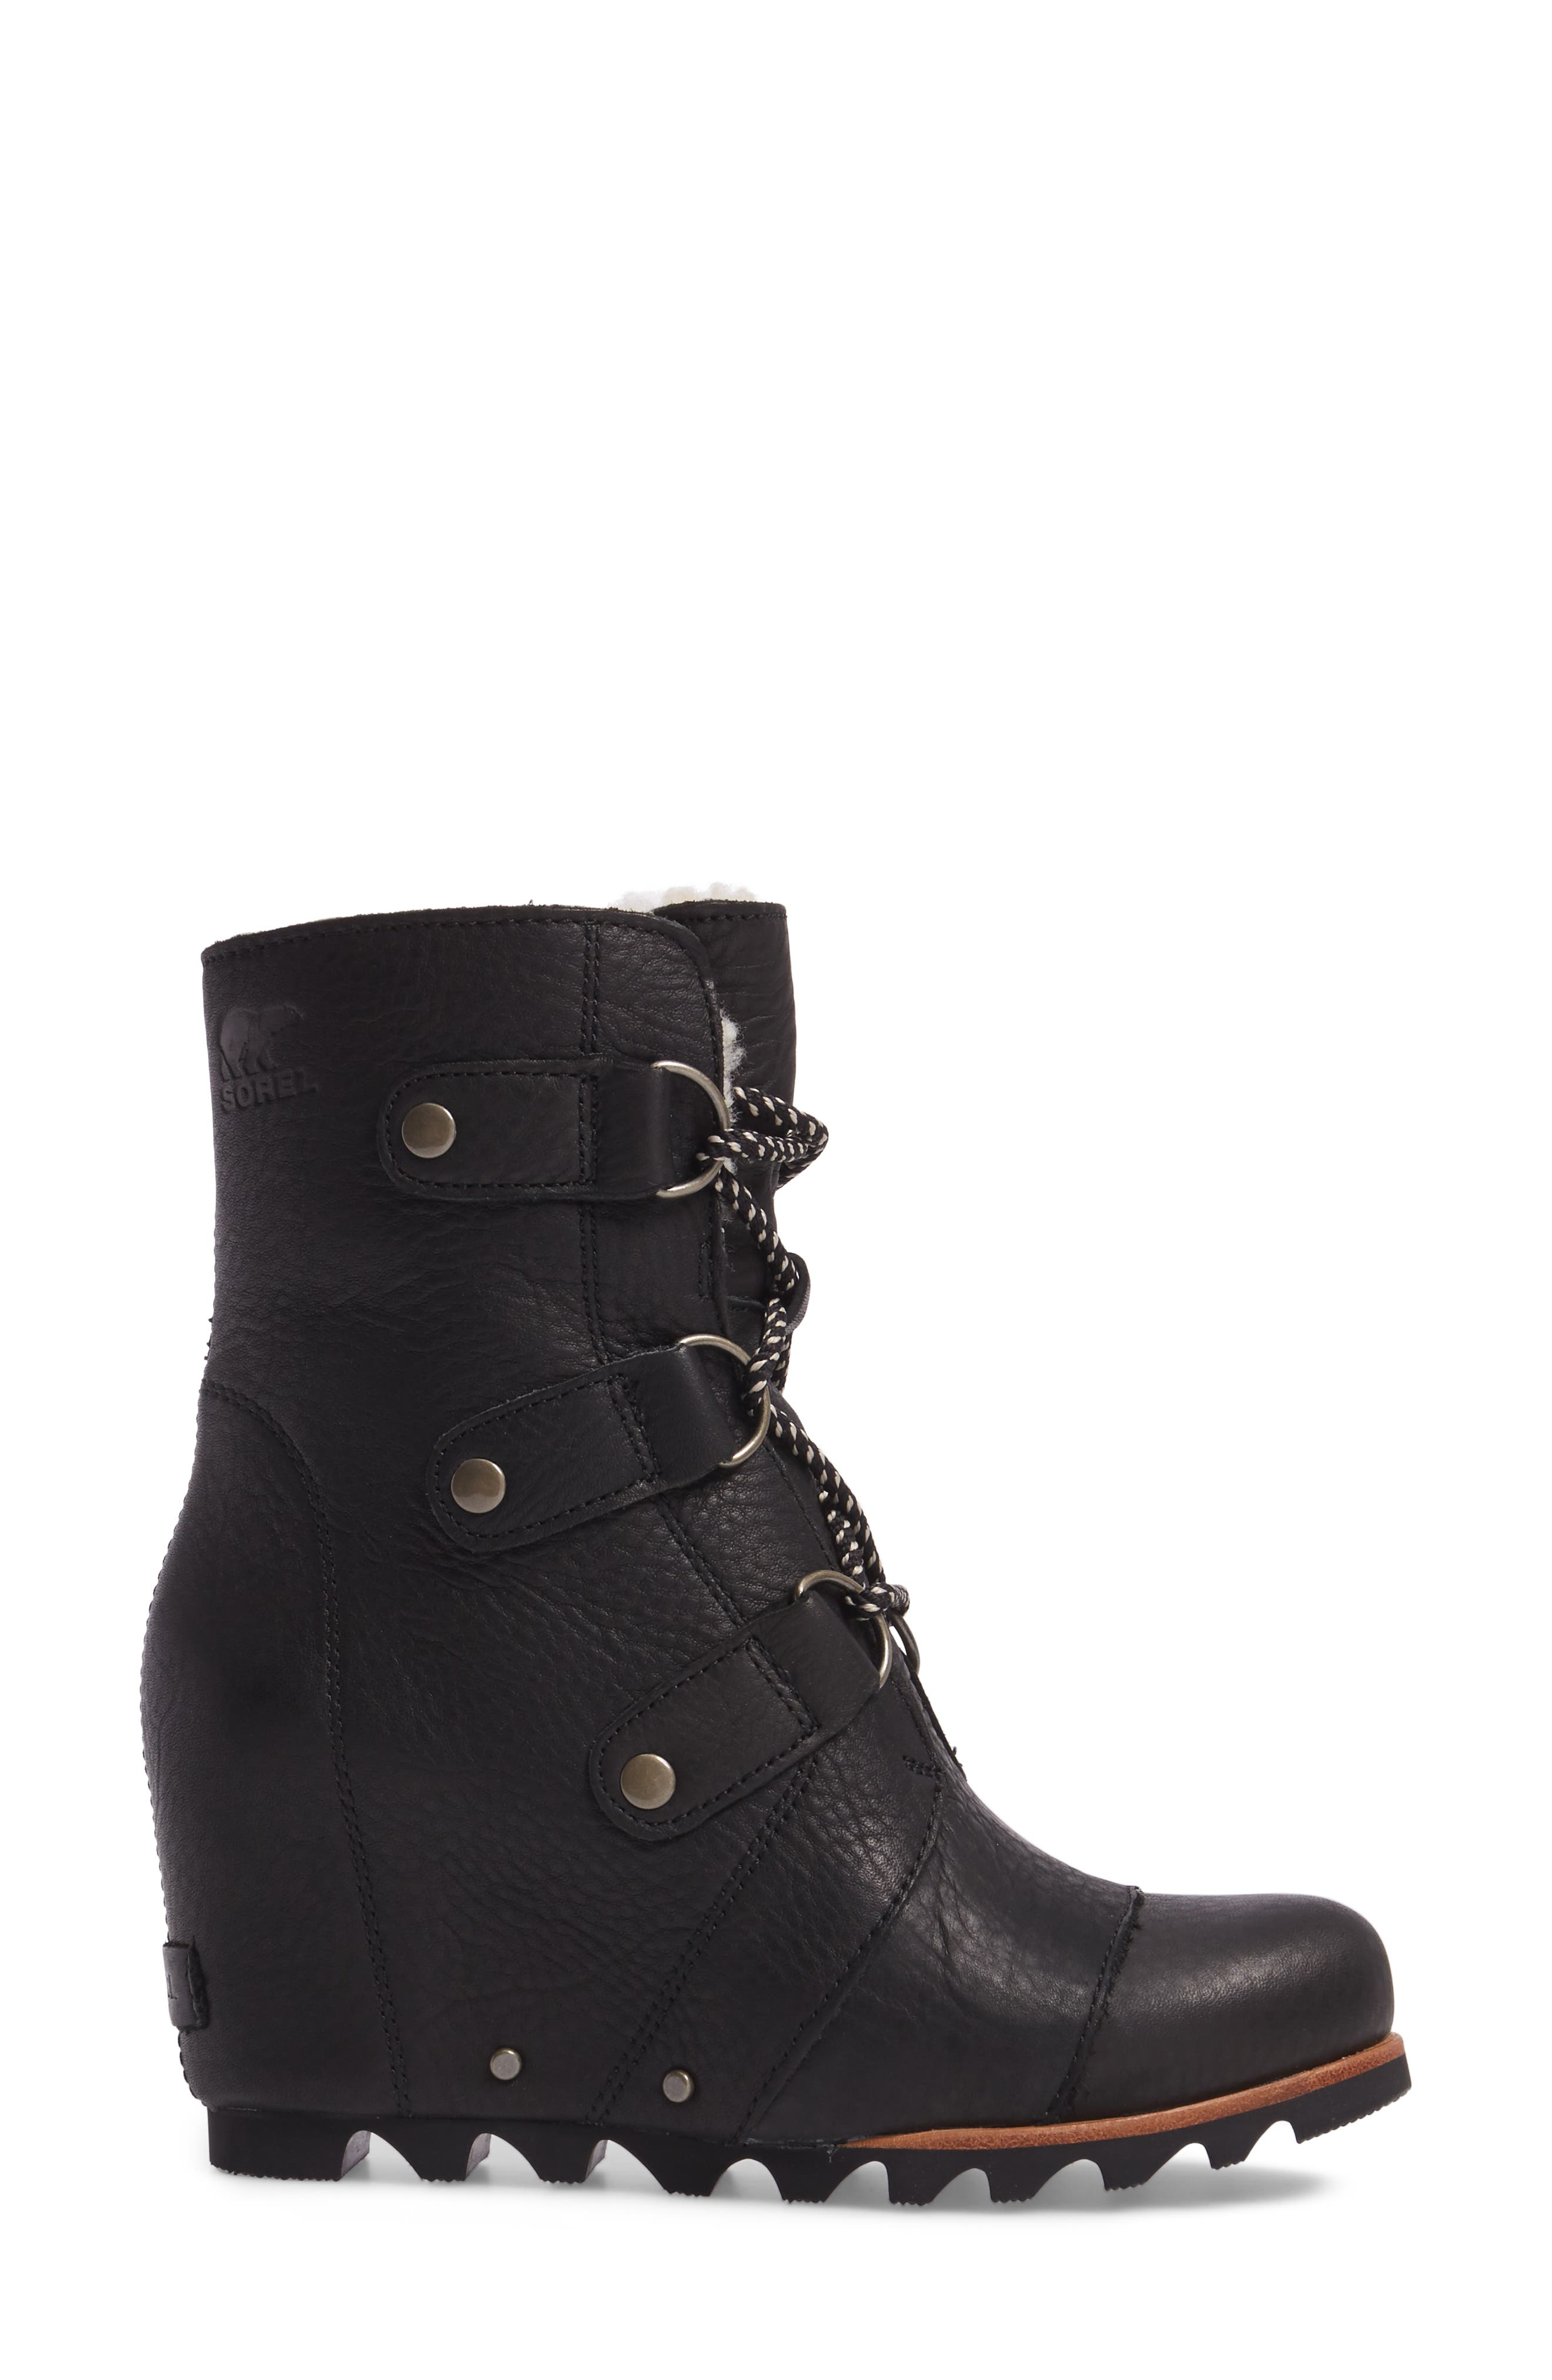 Joan of Arctic Wedge Genuine Shearling Bootie,                             Alternate thumbnail 3, color,                             Black/ Ancient